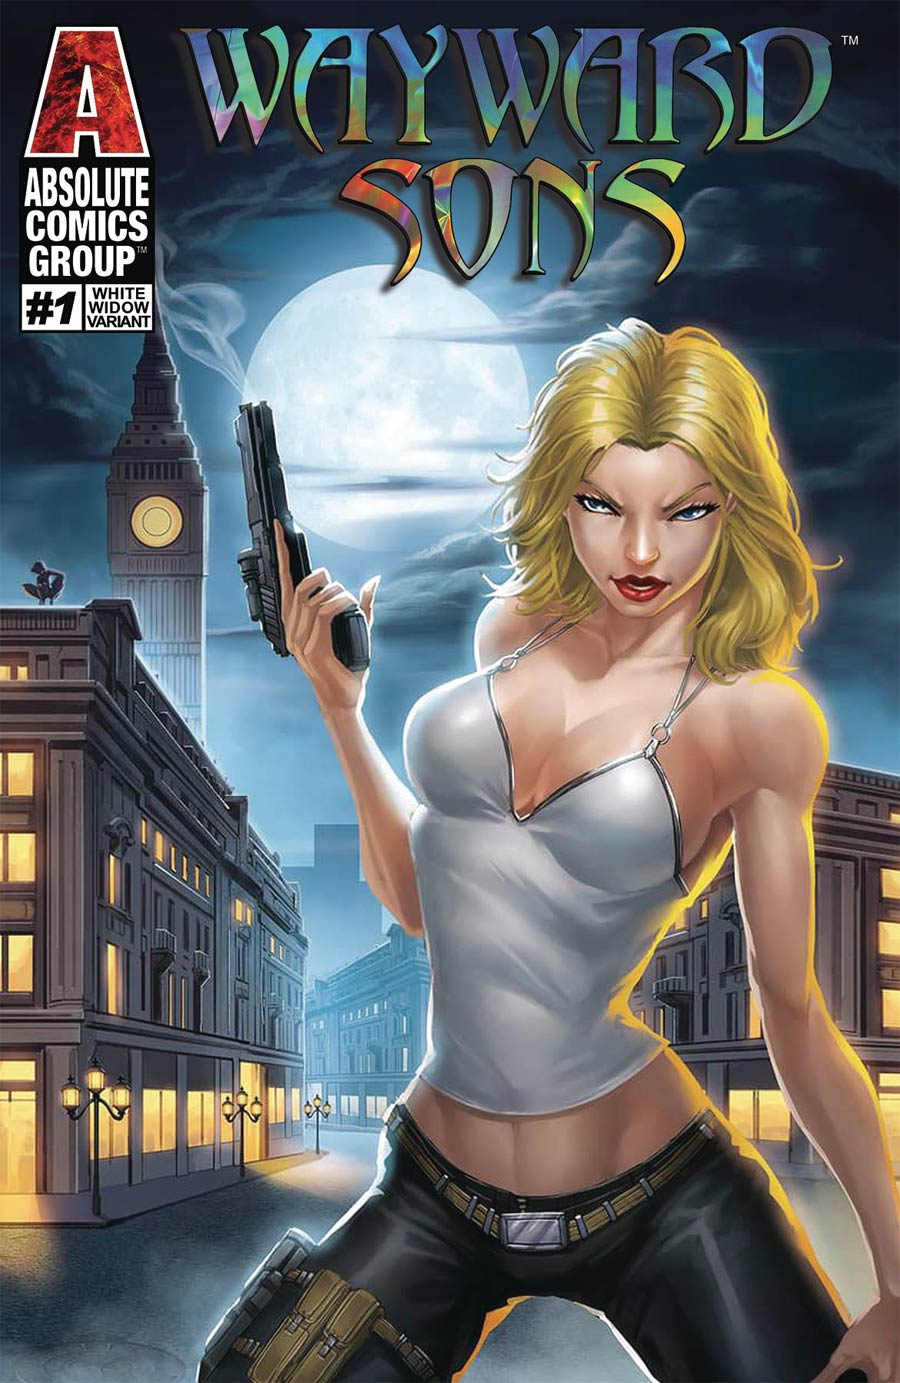 Wayward Sons #1 Cover B Variant White Widow Cover